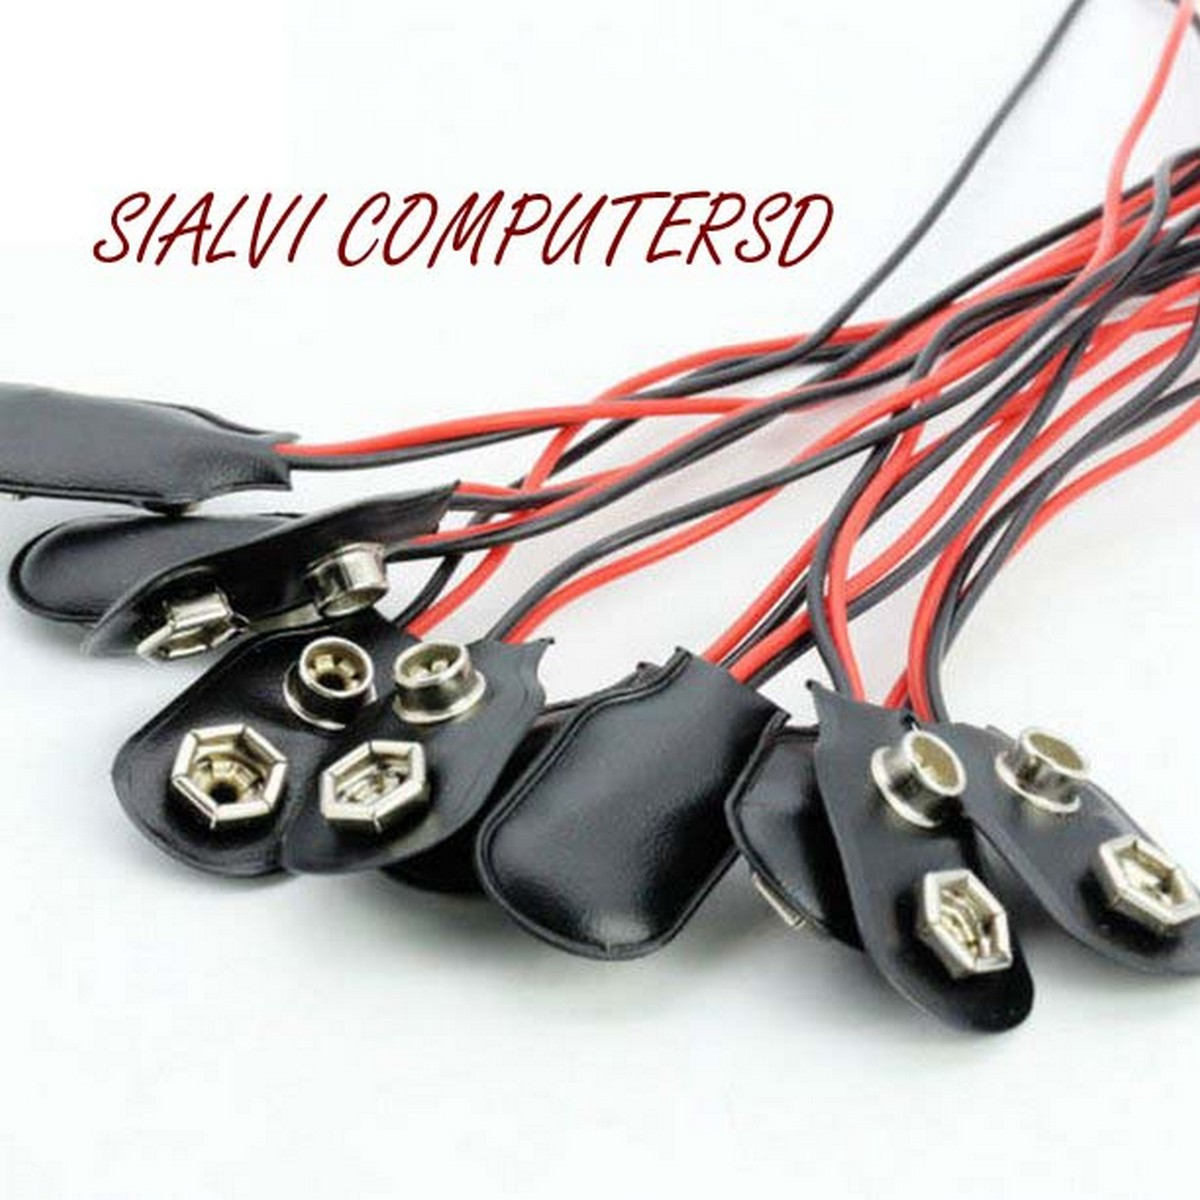 5 pcs 9V Battery Clip Snap-On Plug Holder Connector Cable With Wire Leads 9-Volt